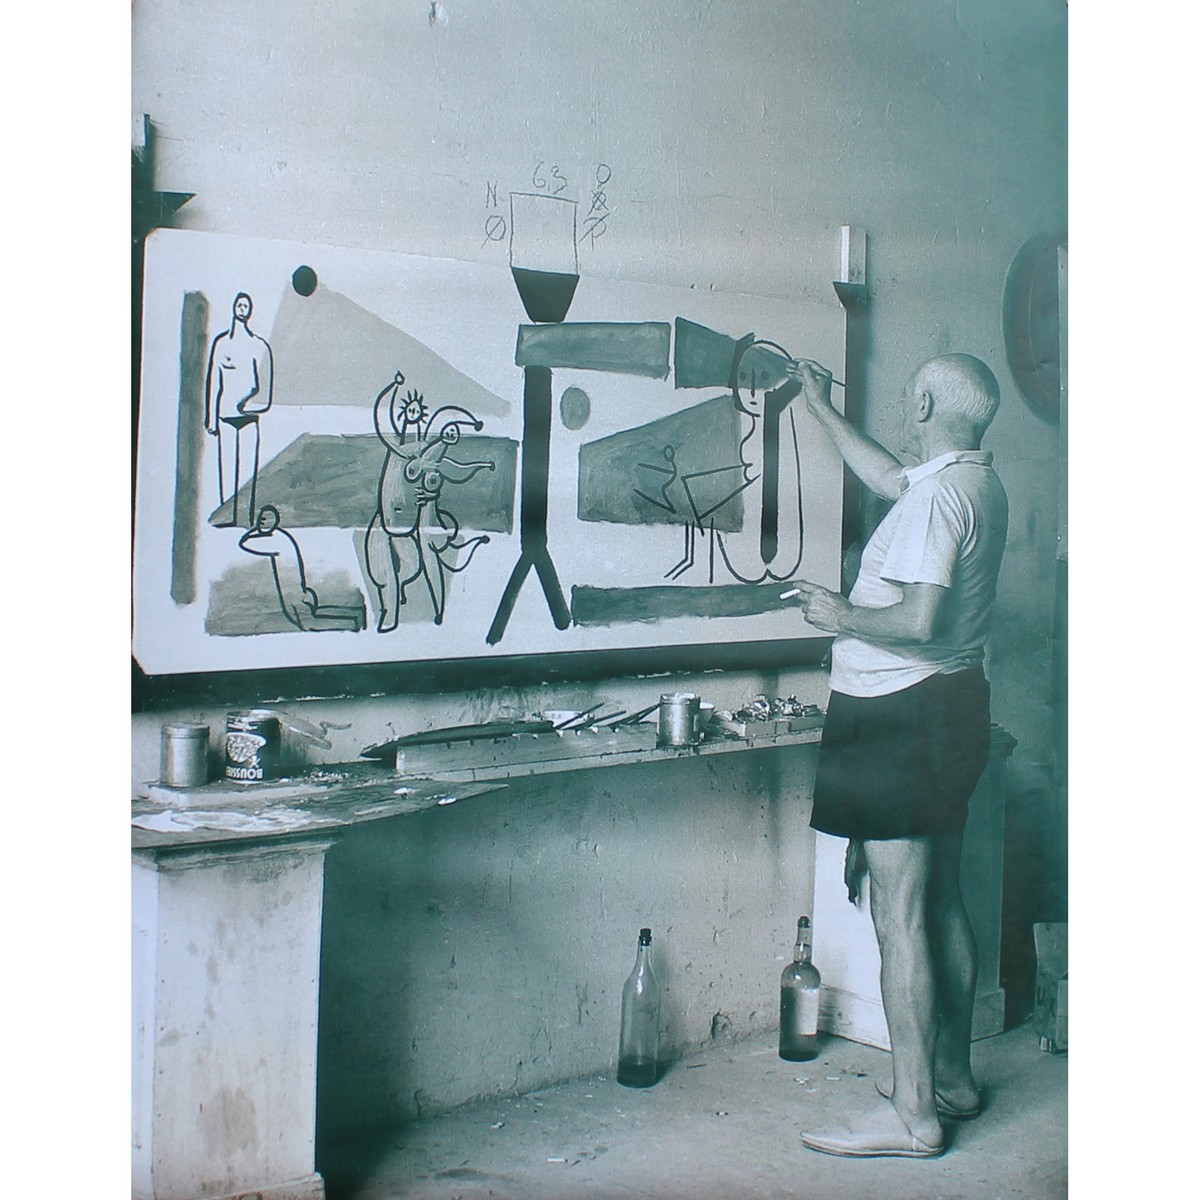 Lot 45 - Picasso, Pablo 1881-1973 Spanish AR, Large Advertising Photograph of Picasso Painting